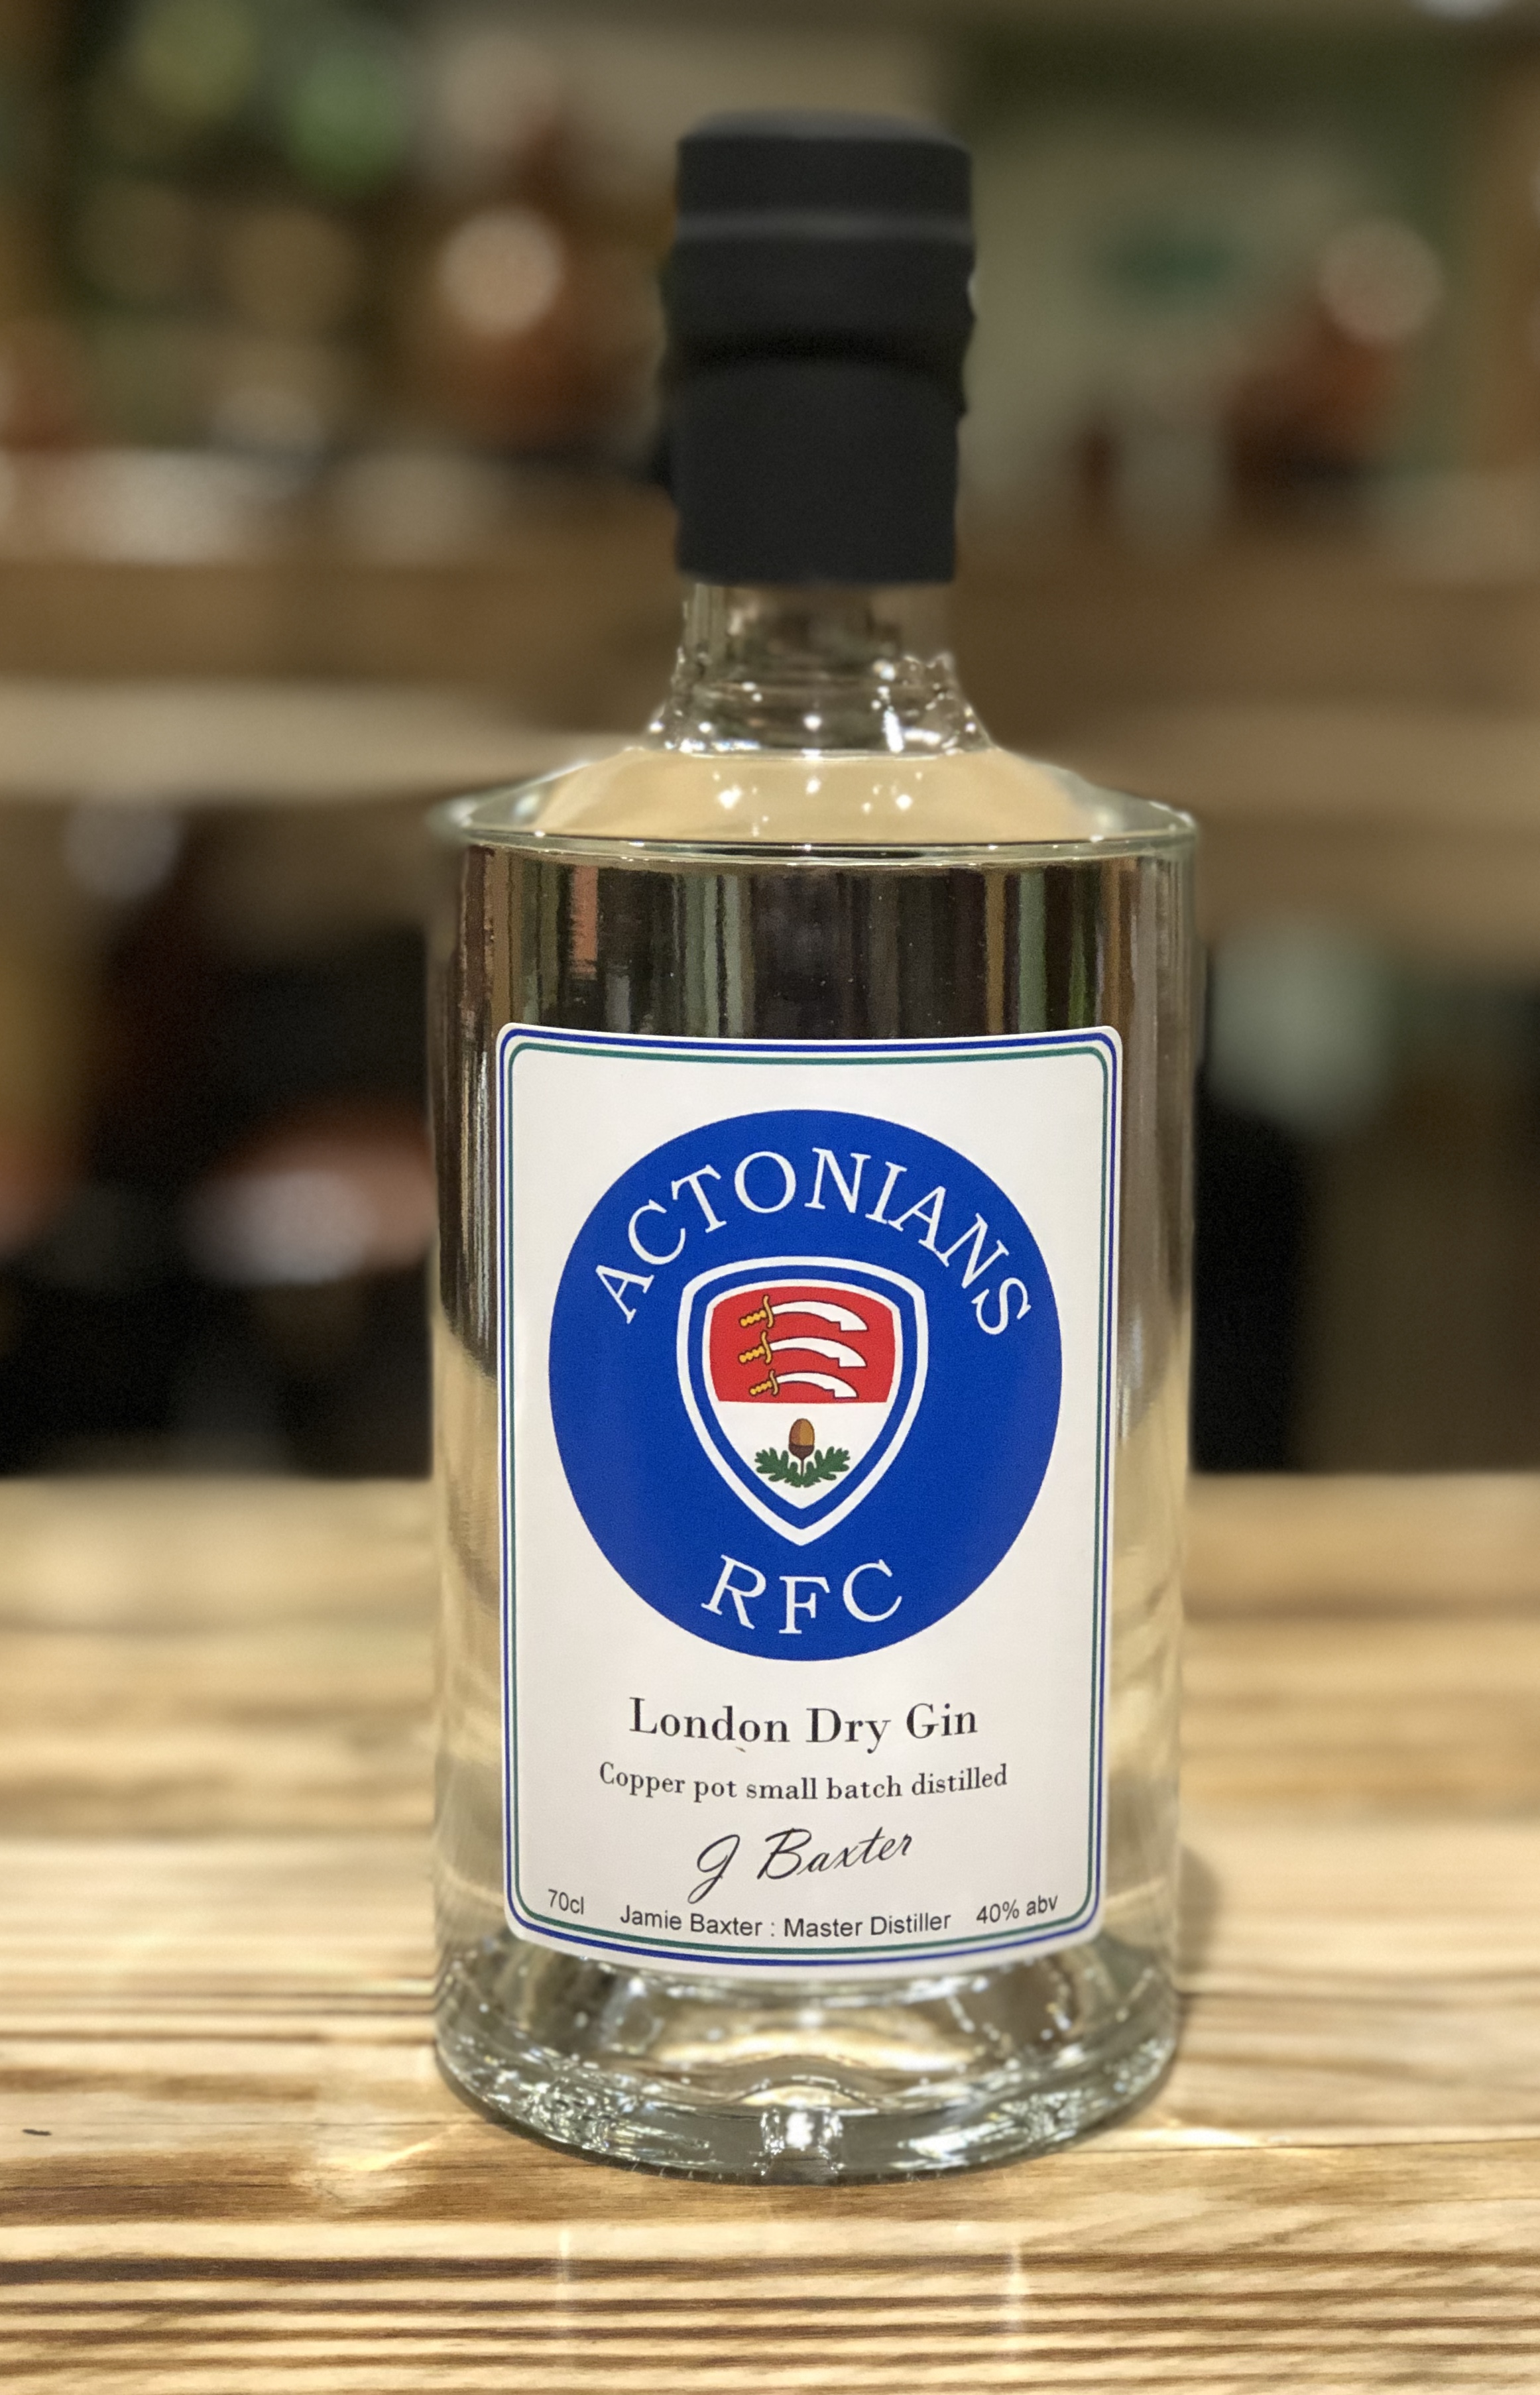 Actonians RFC 'London Dry Gin'